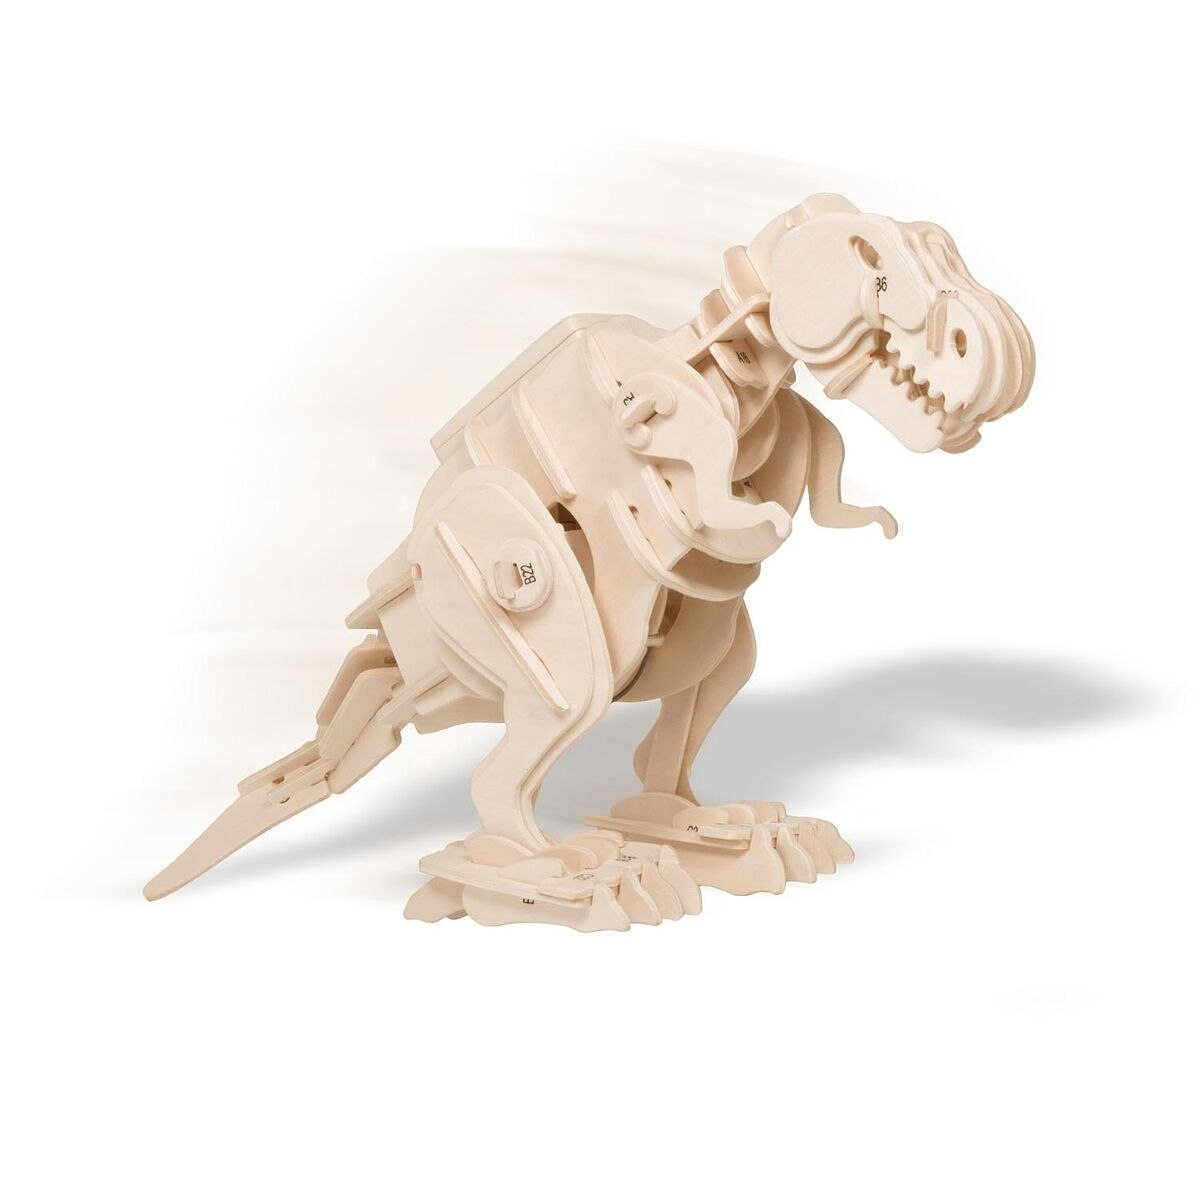 Walking T-Rex - Funktionsmodell aus Holz